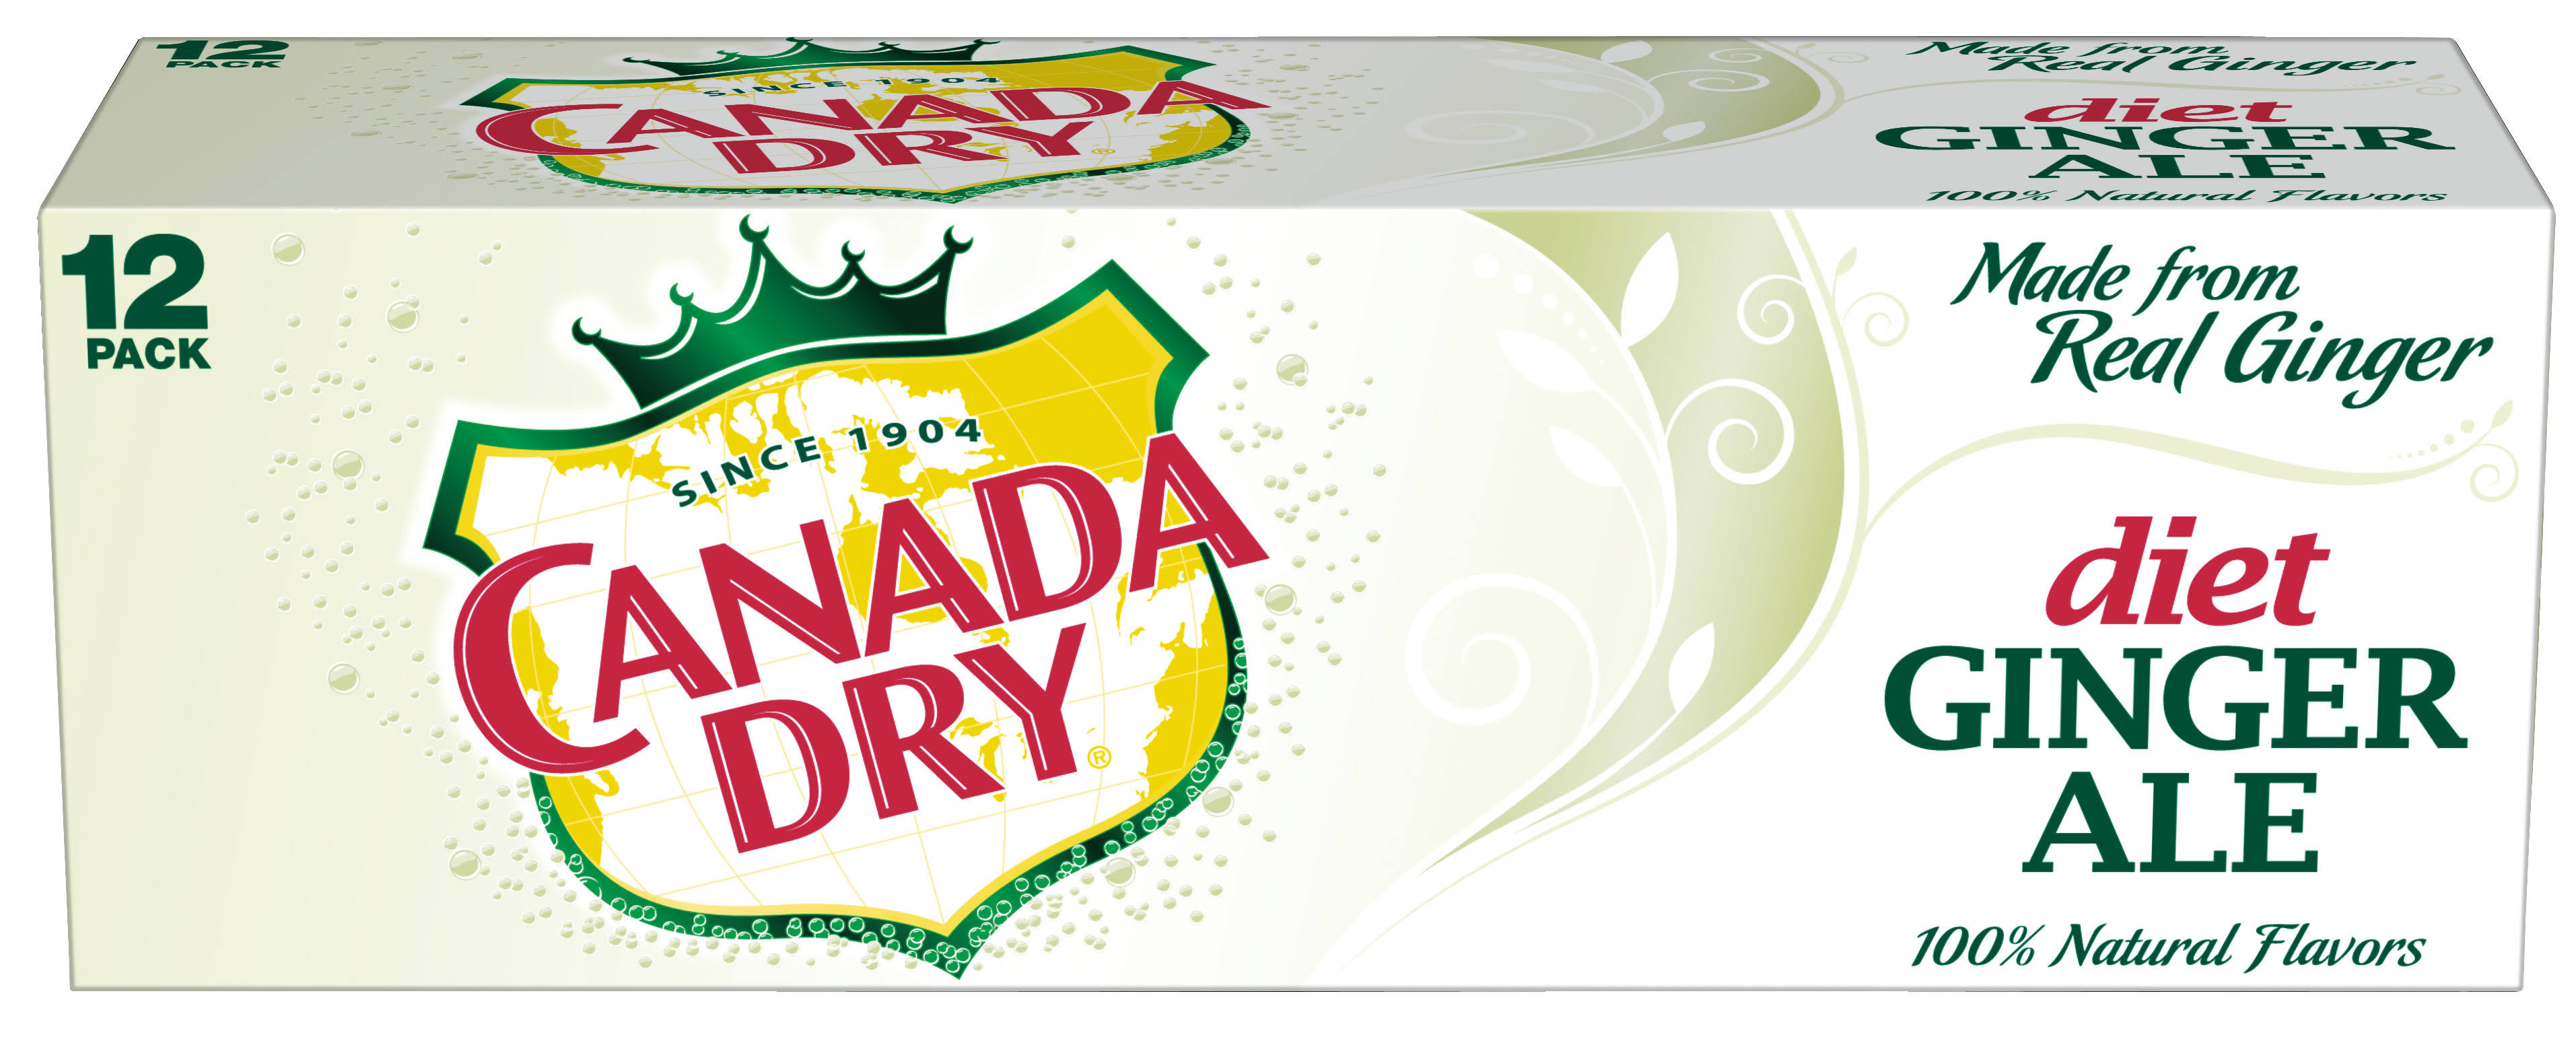 Canada Dry Diet Caffeine Free Ginger Ale